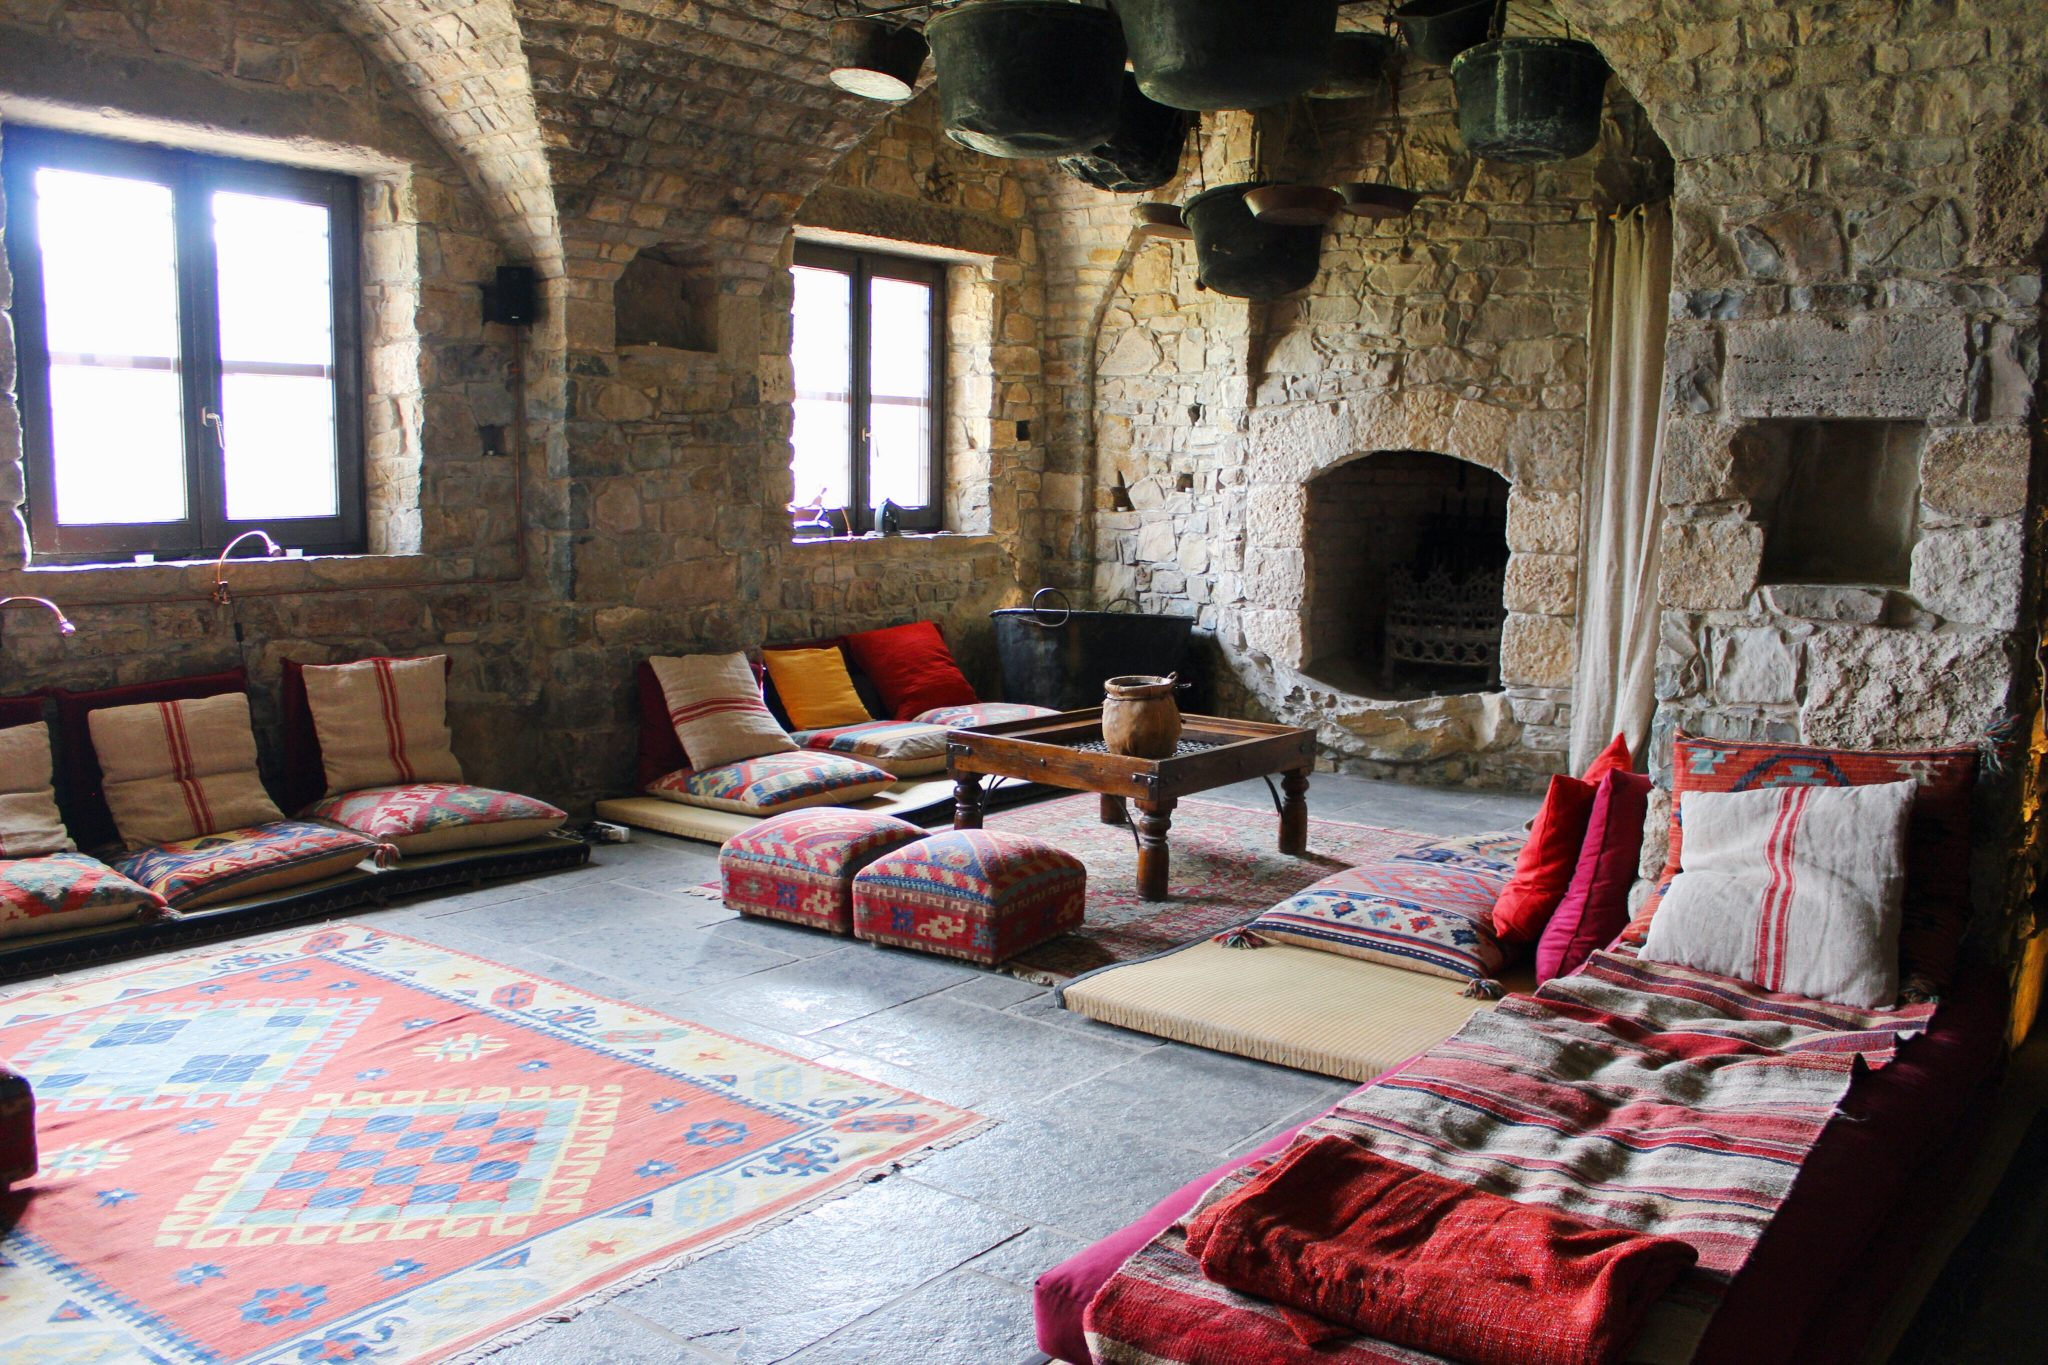 Solitude & Spirituality: A Luxury Eco-Hotel in the Heart of Umbria, Italy